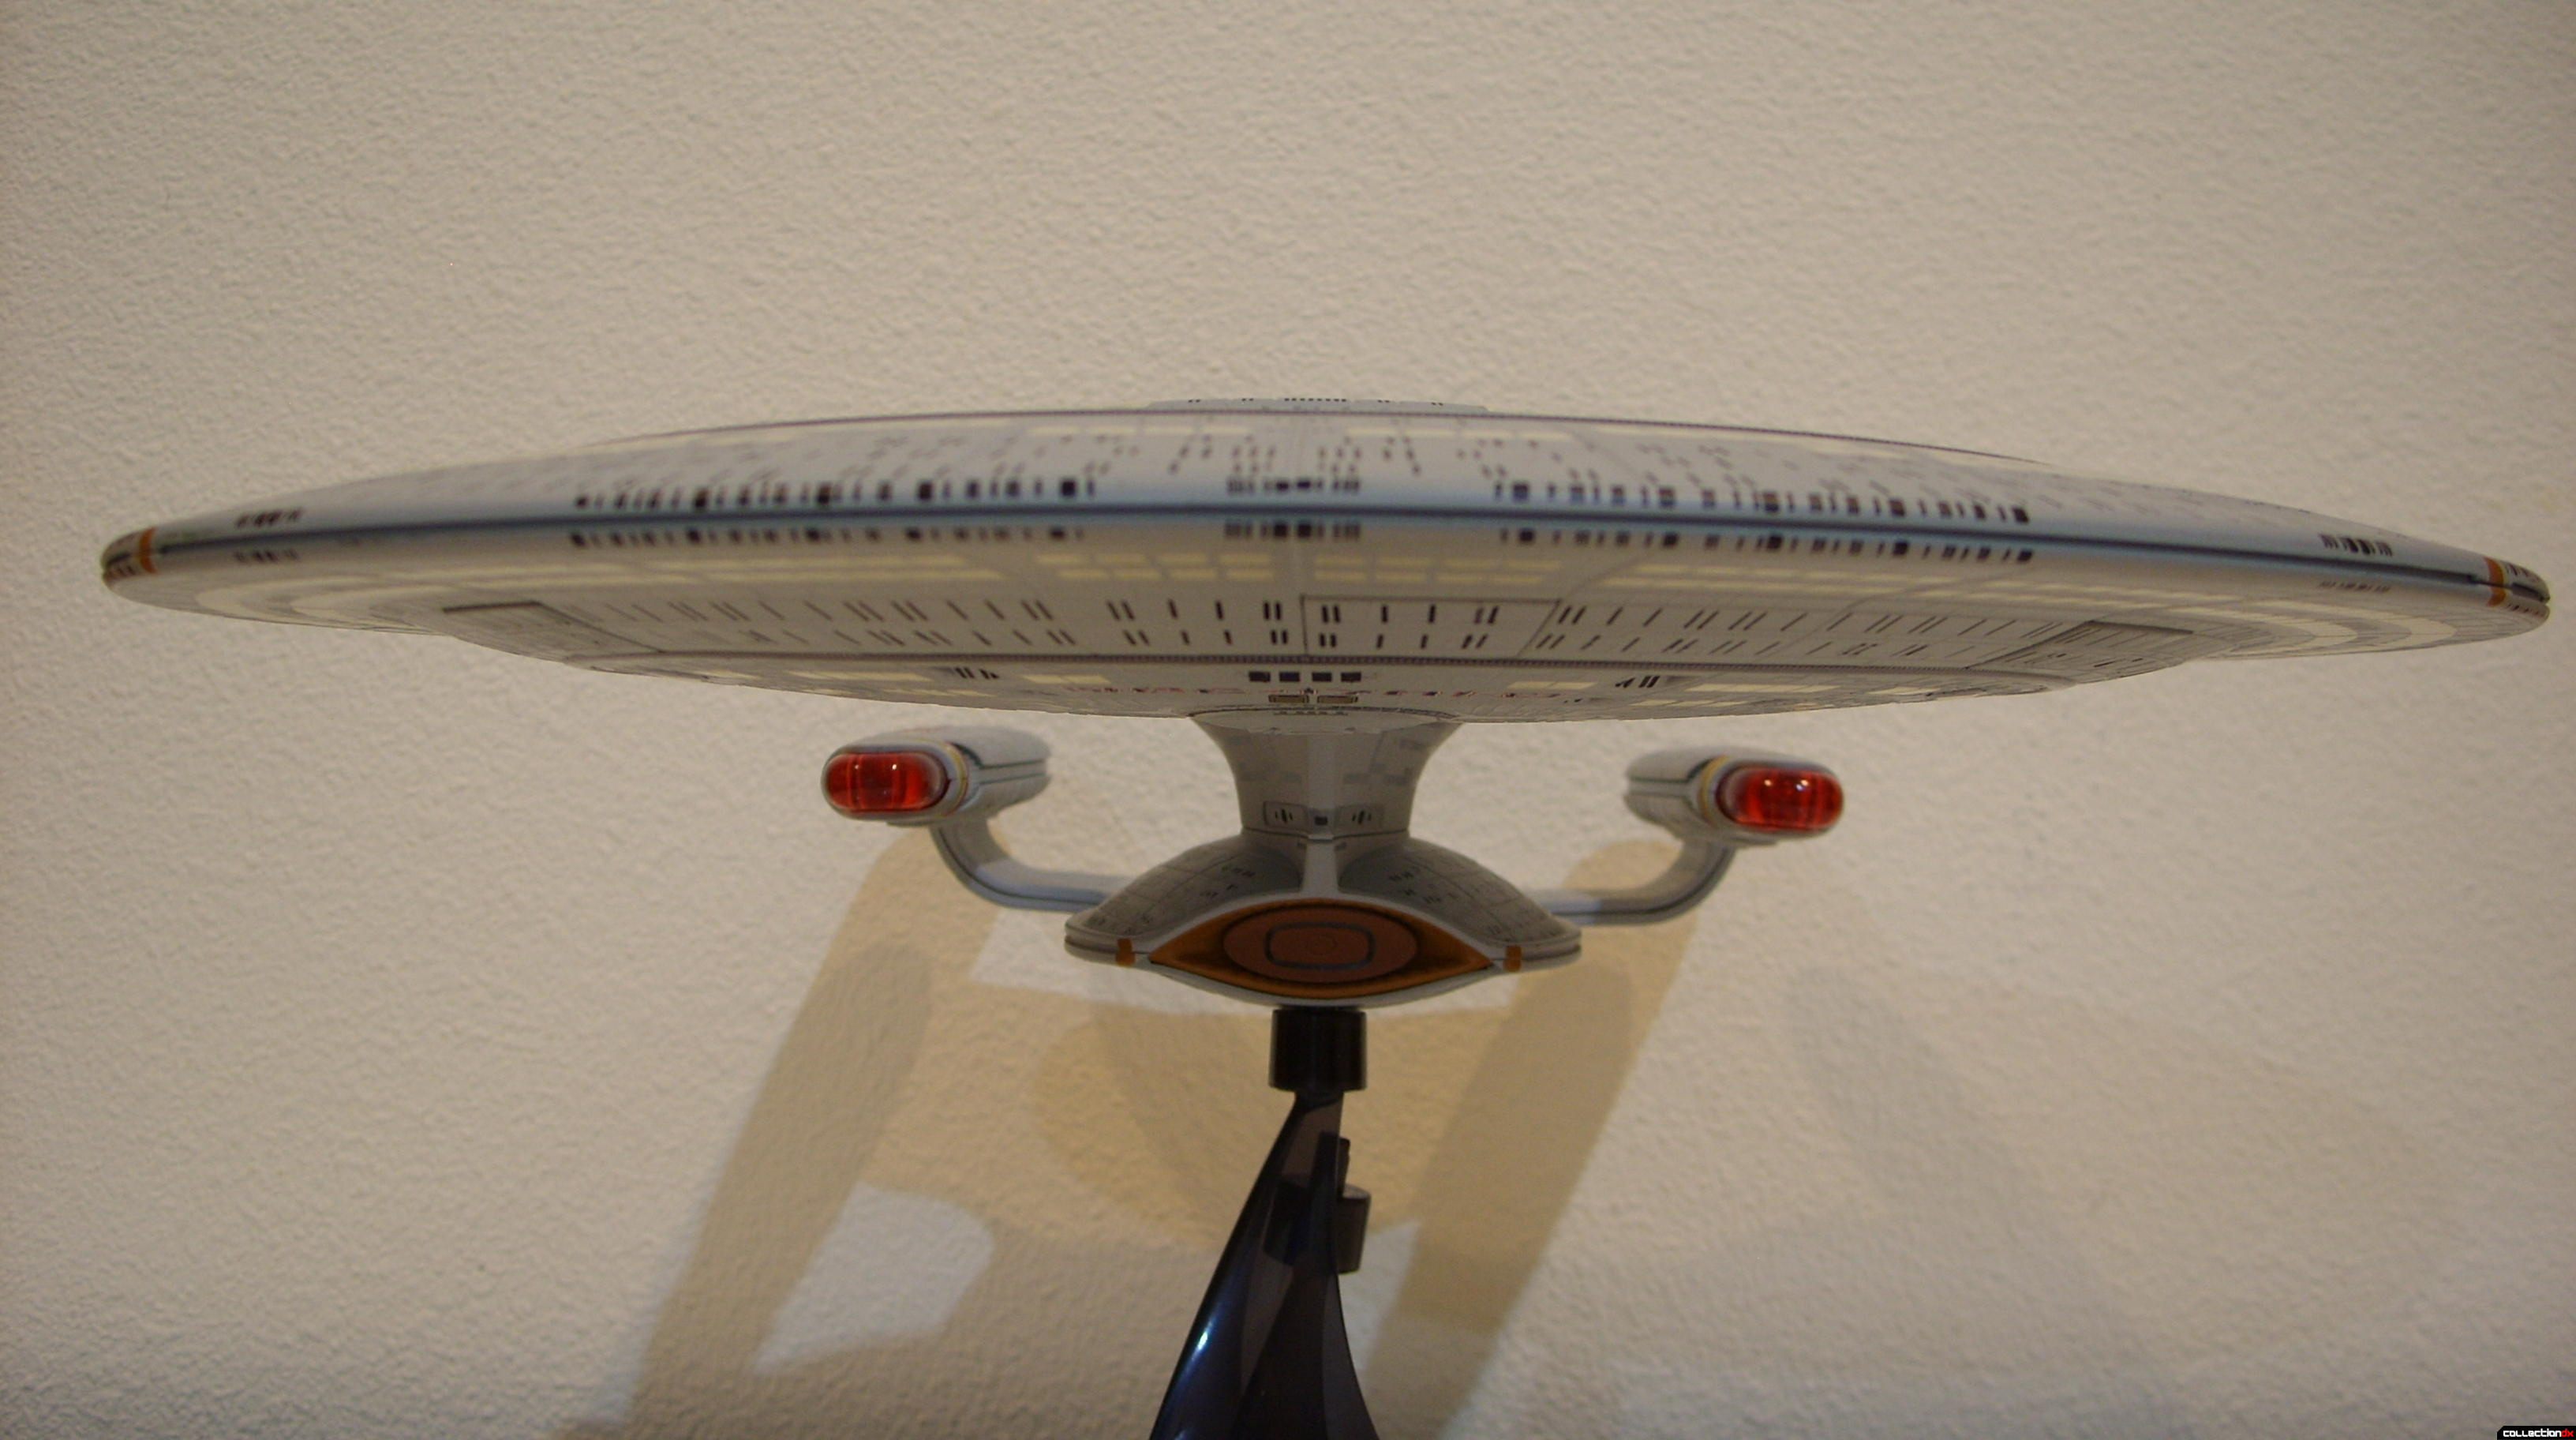 Starship Legends U.S.S. Enterprise-D (forward profile)